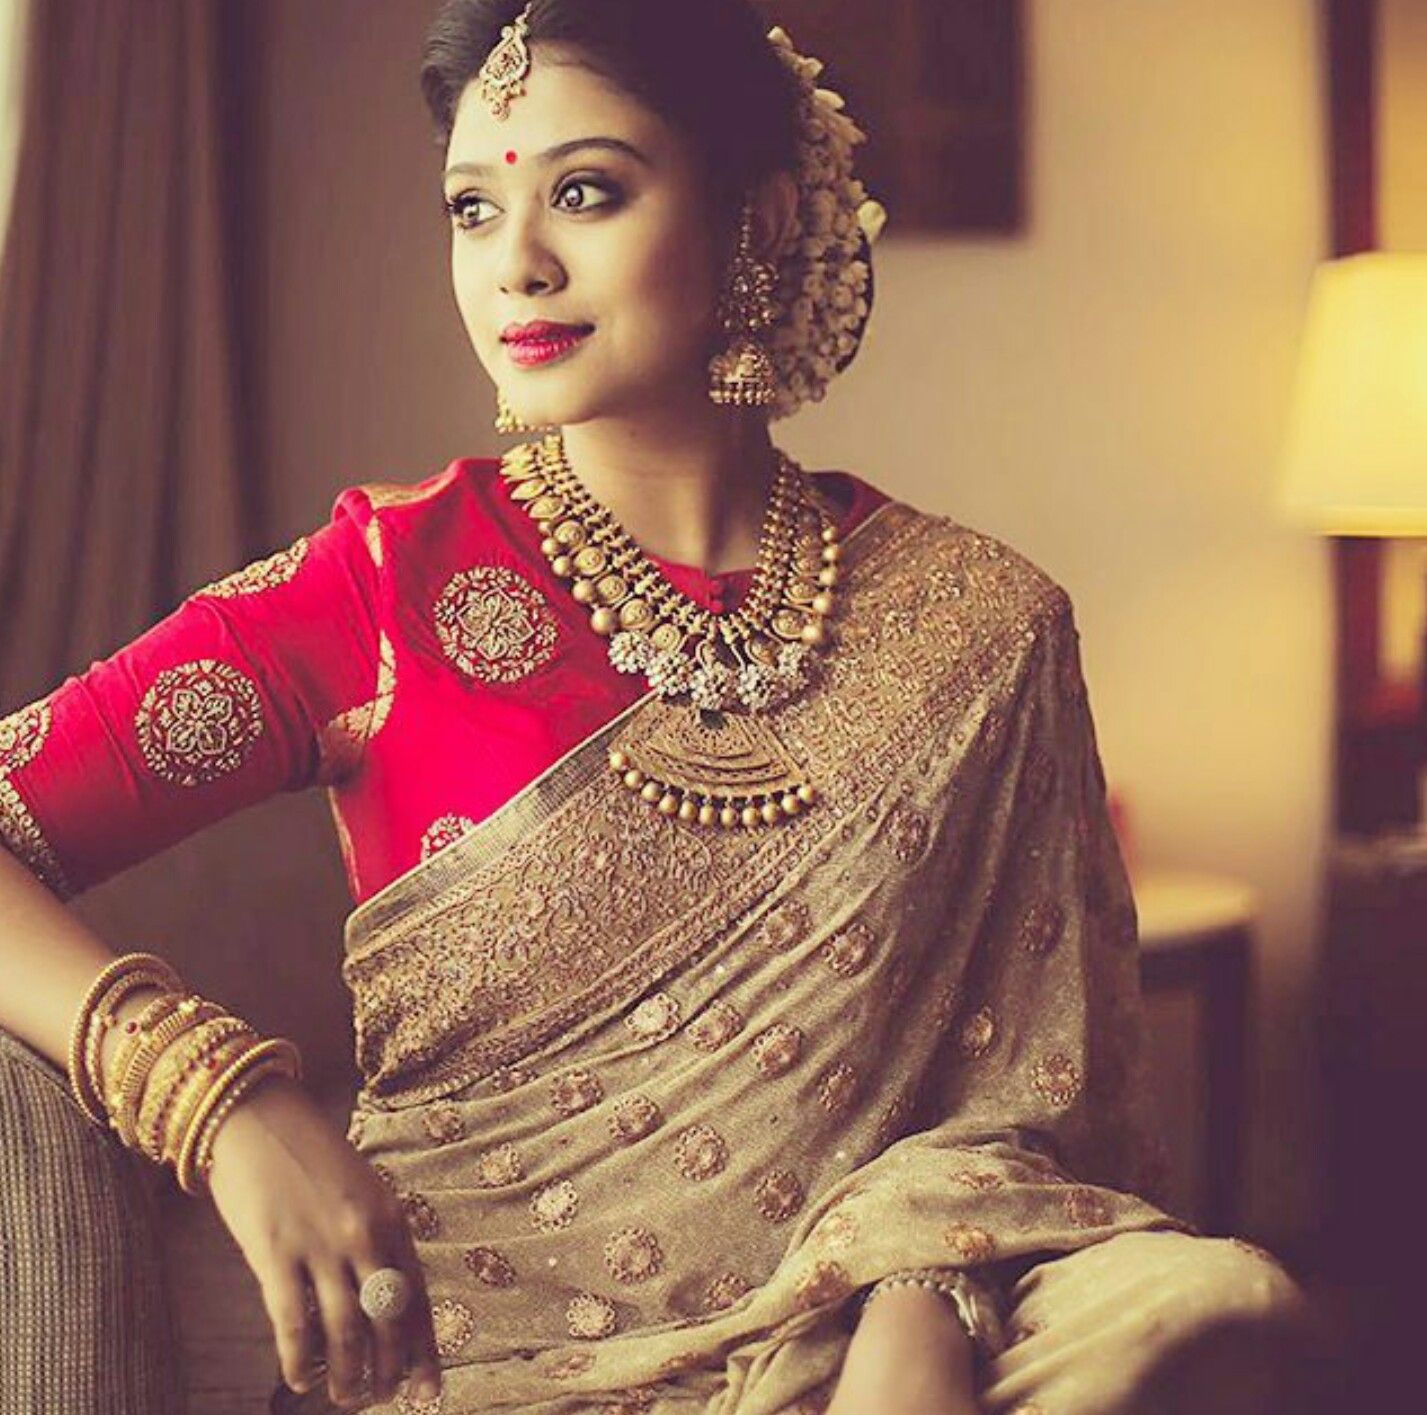 Different Hairstyles For Girls In Kerala: Gold Jewelry, Silk Sari And Blouse, And Fresh Jasmines In